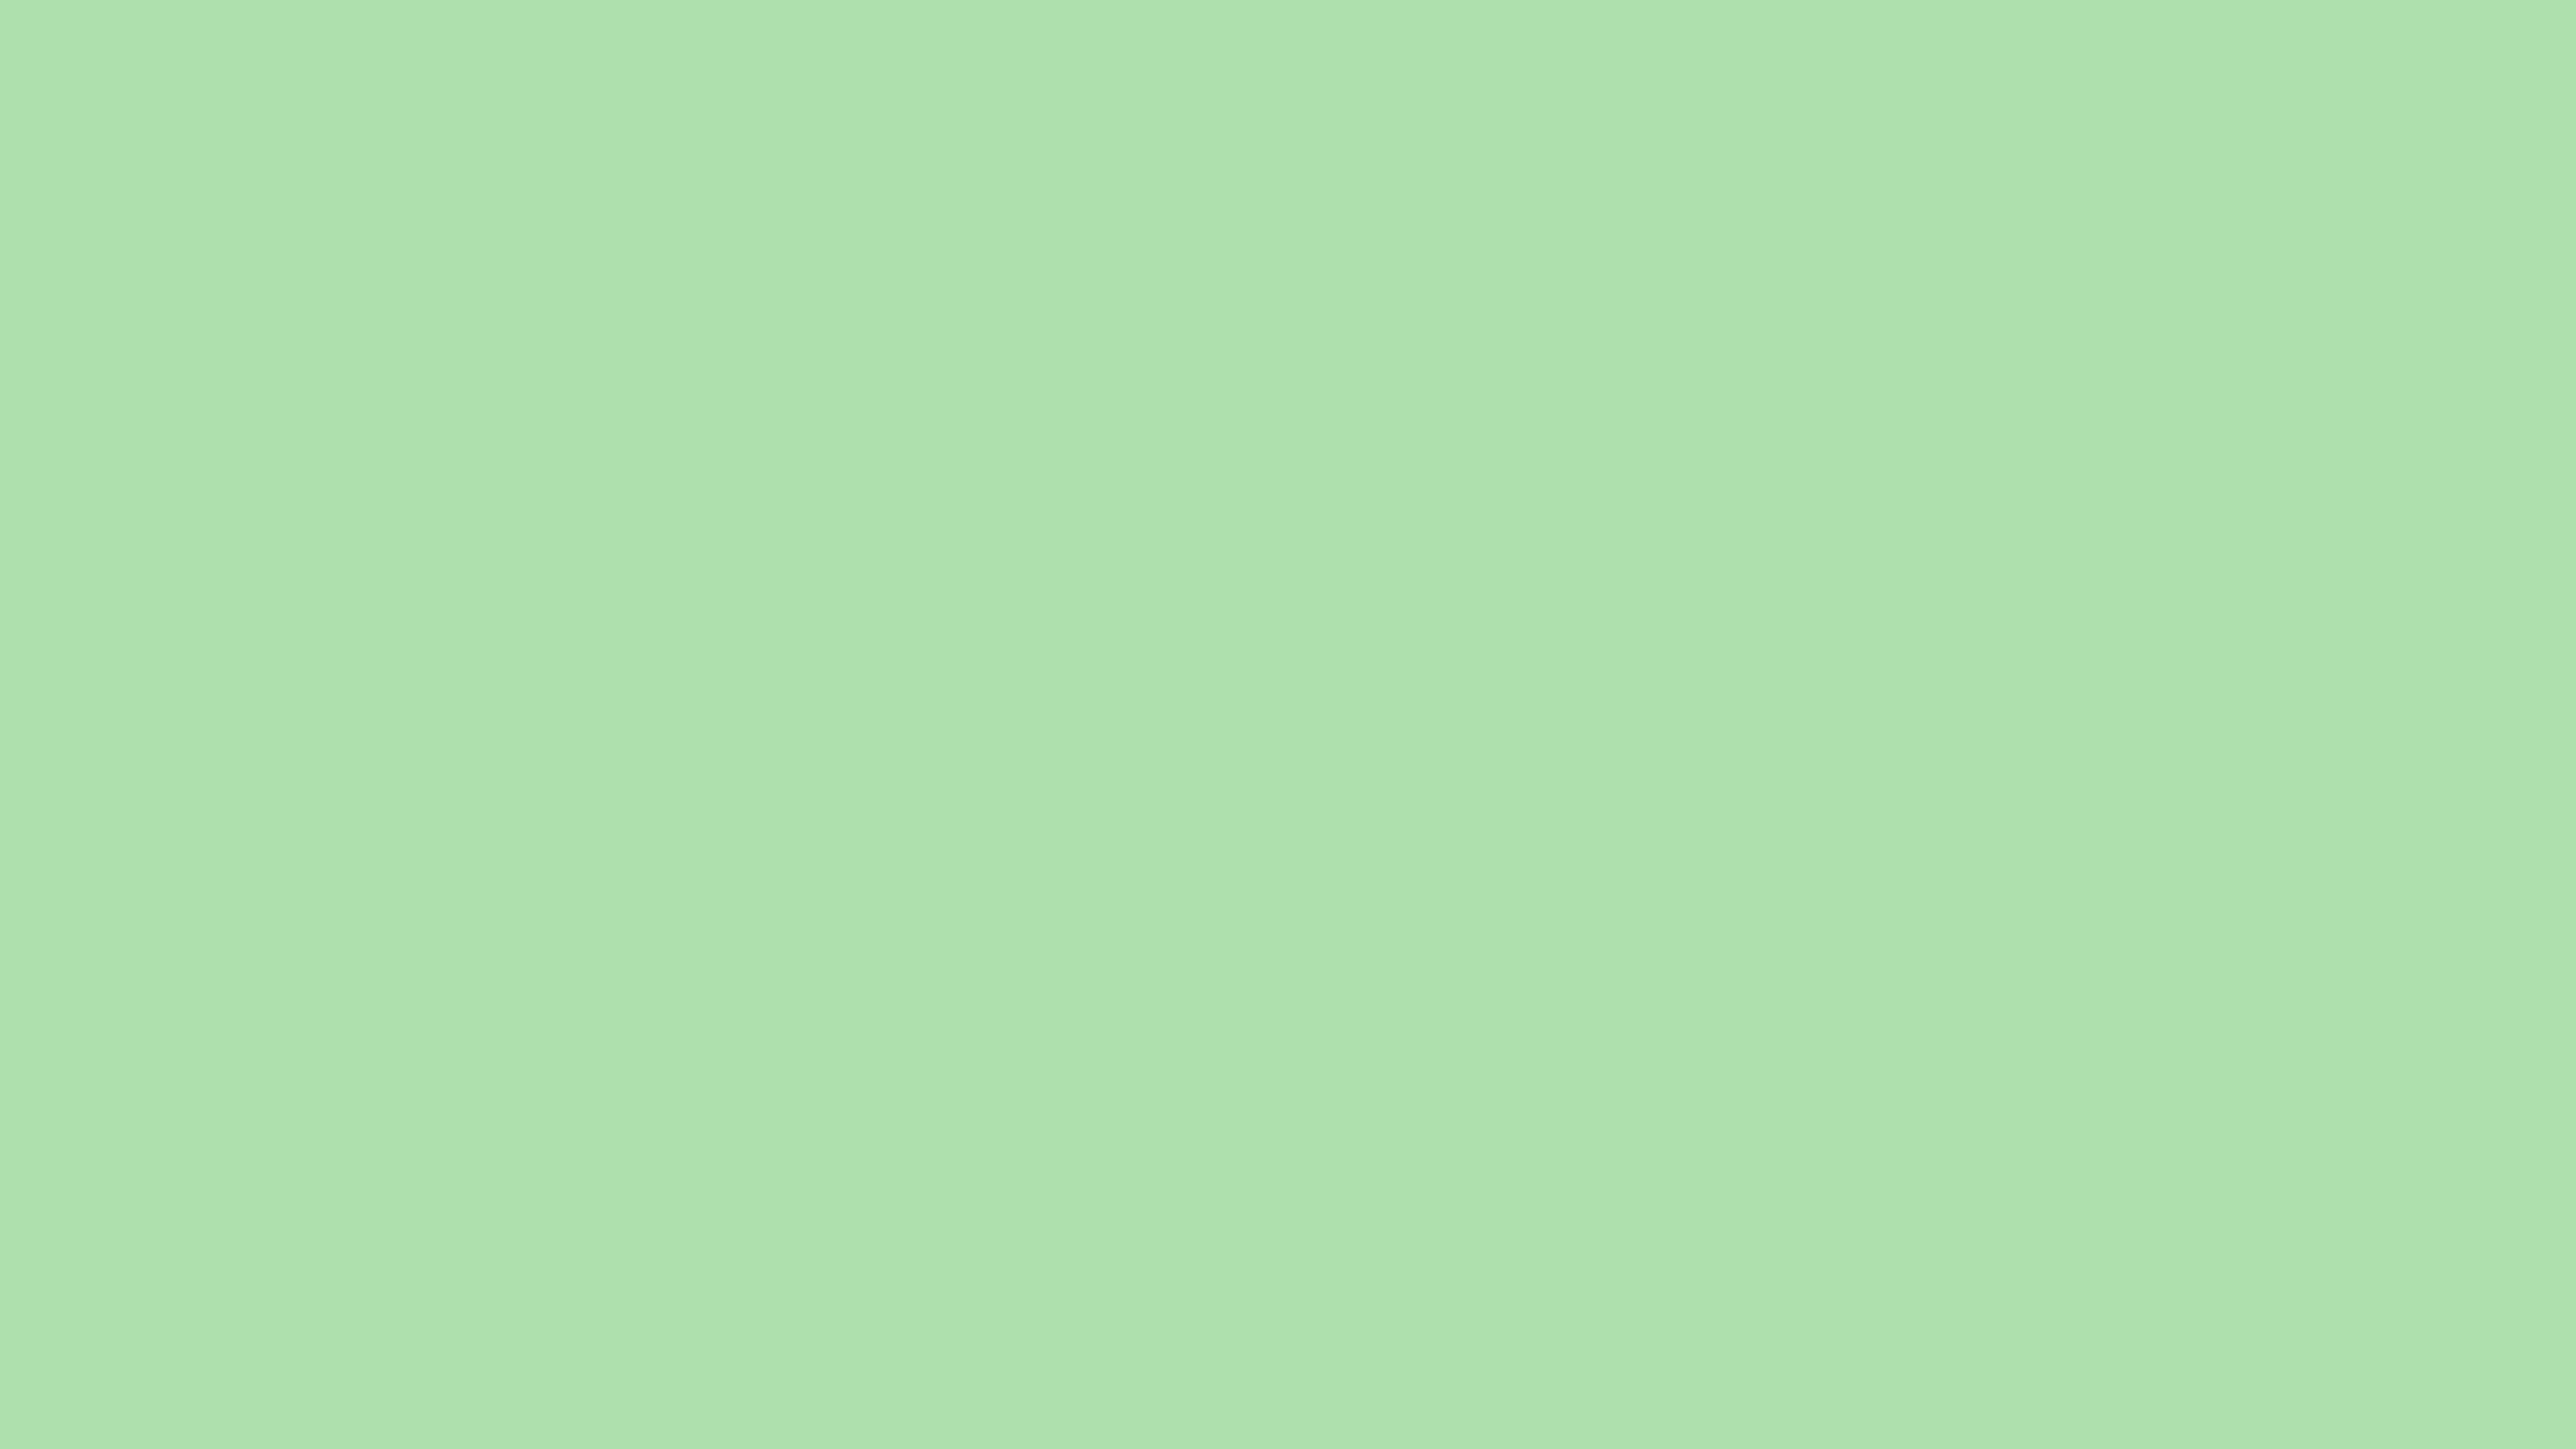 3840x2160 Light Moss Green Solid Color Background